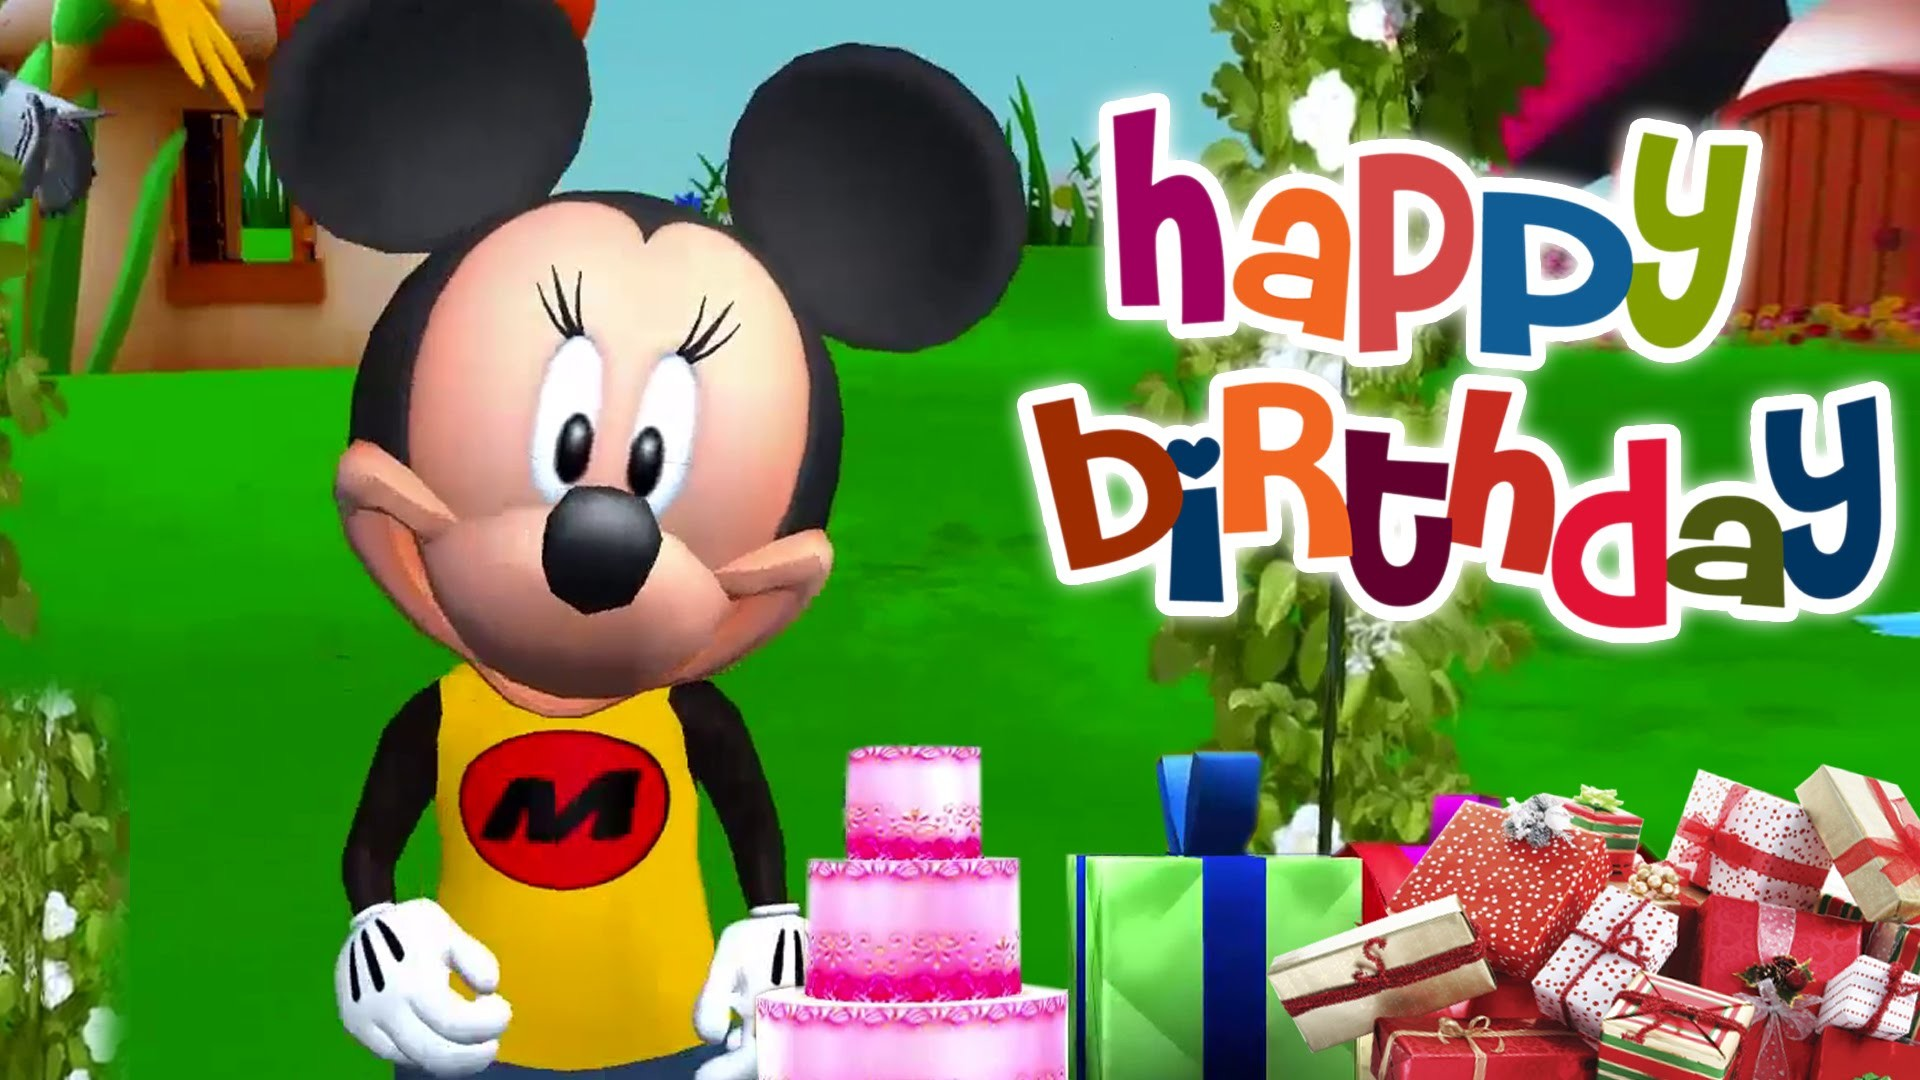 1920x1080 Mickey Mouse Birthday Song|Happy Birthday Song for Babies|Kids Favorite  Song|Children Song. - YouTube